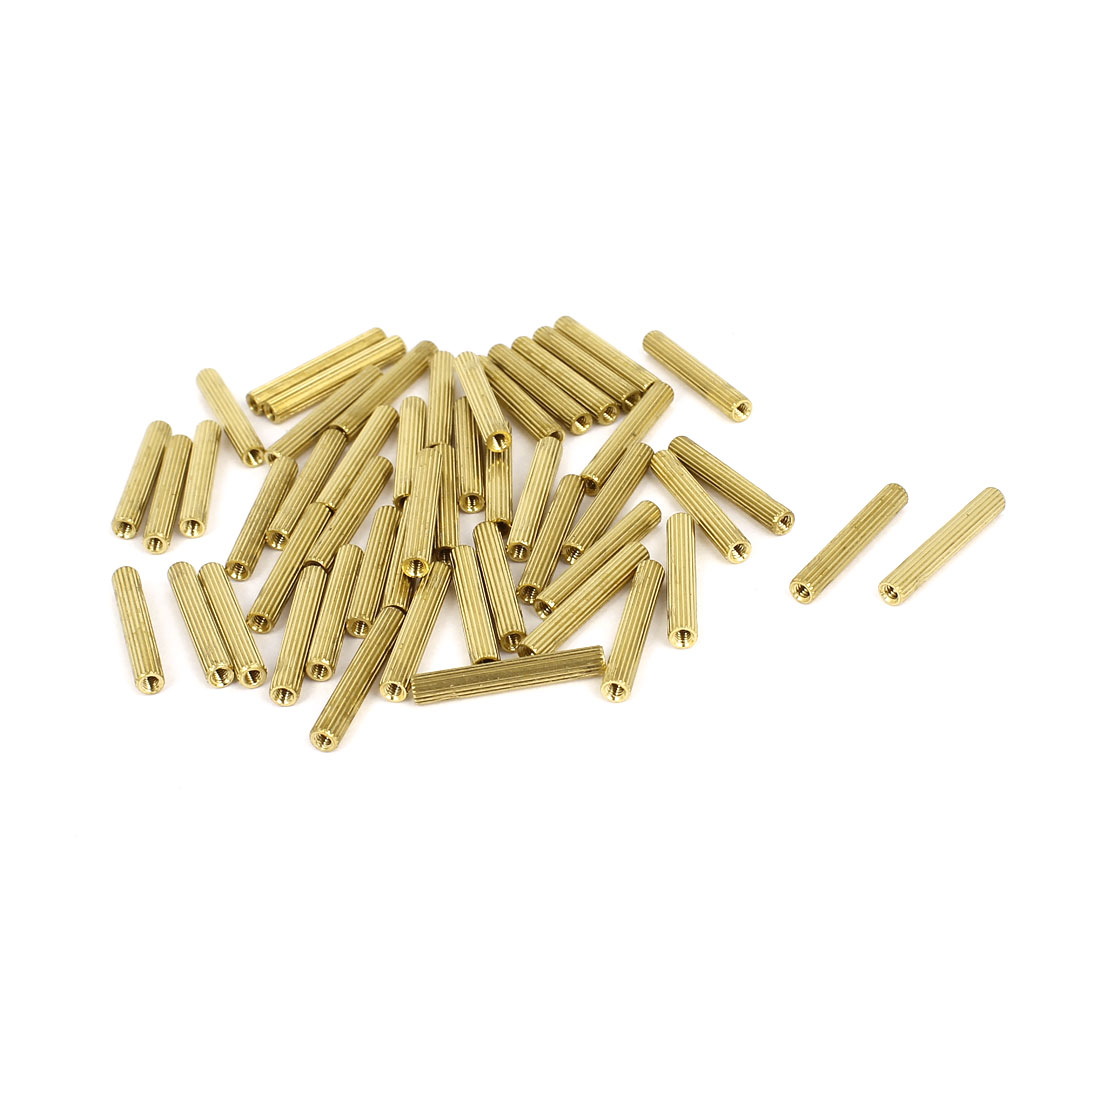 50 Pcs 2mm Female Threaded Pillars Brass Standoff Spacer Nuts M2x20mm